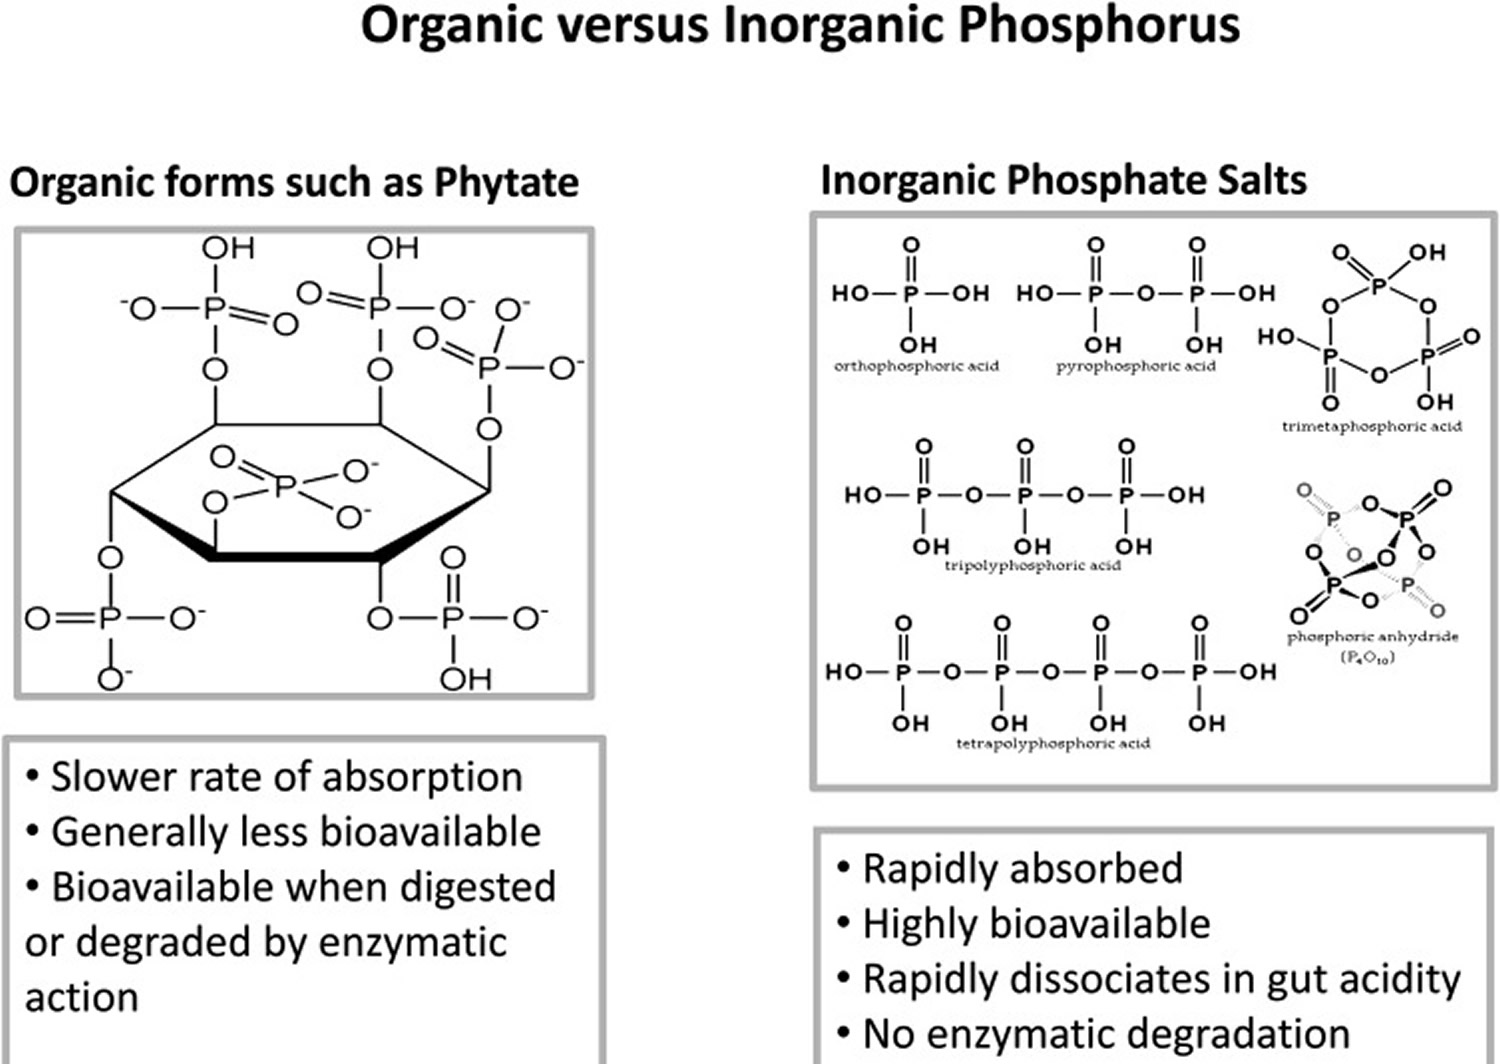 phosphorus types in foods